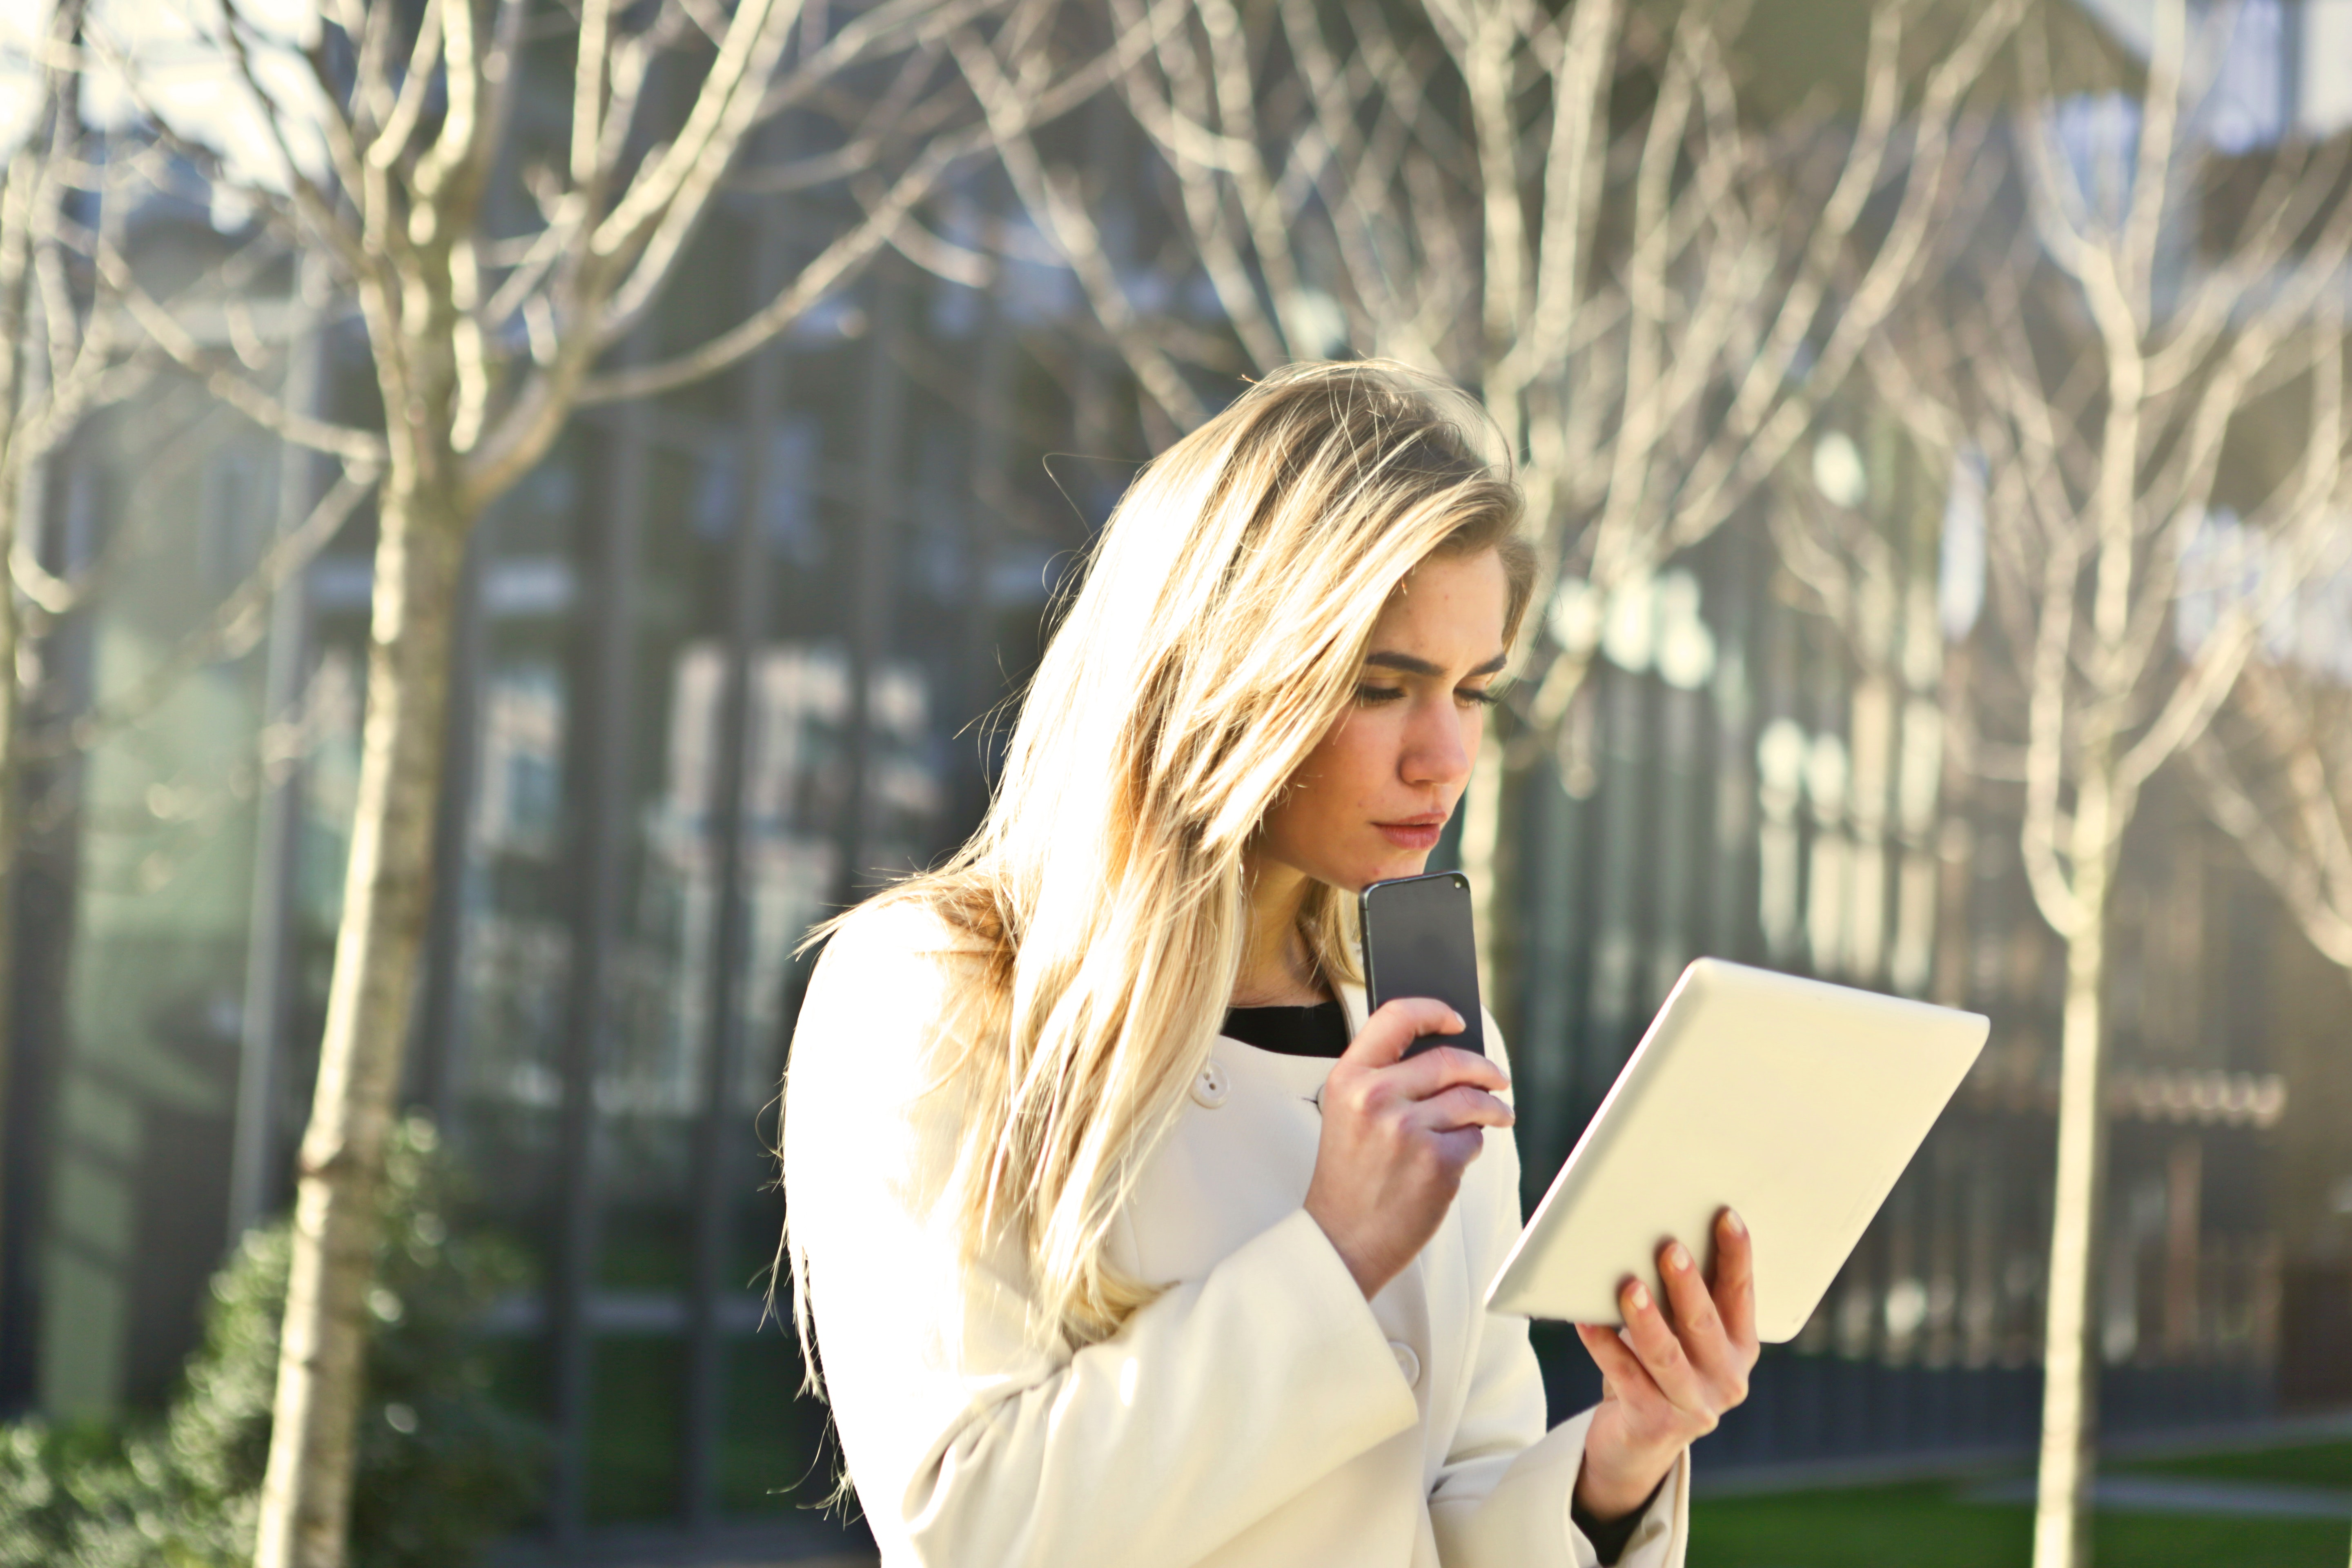 Brown-haired Woman Holding a White Wireless Device, Adult, Park, Person, Portrait, HQ Photo